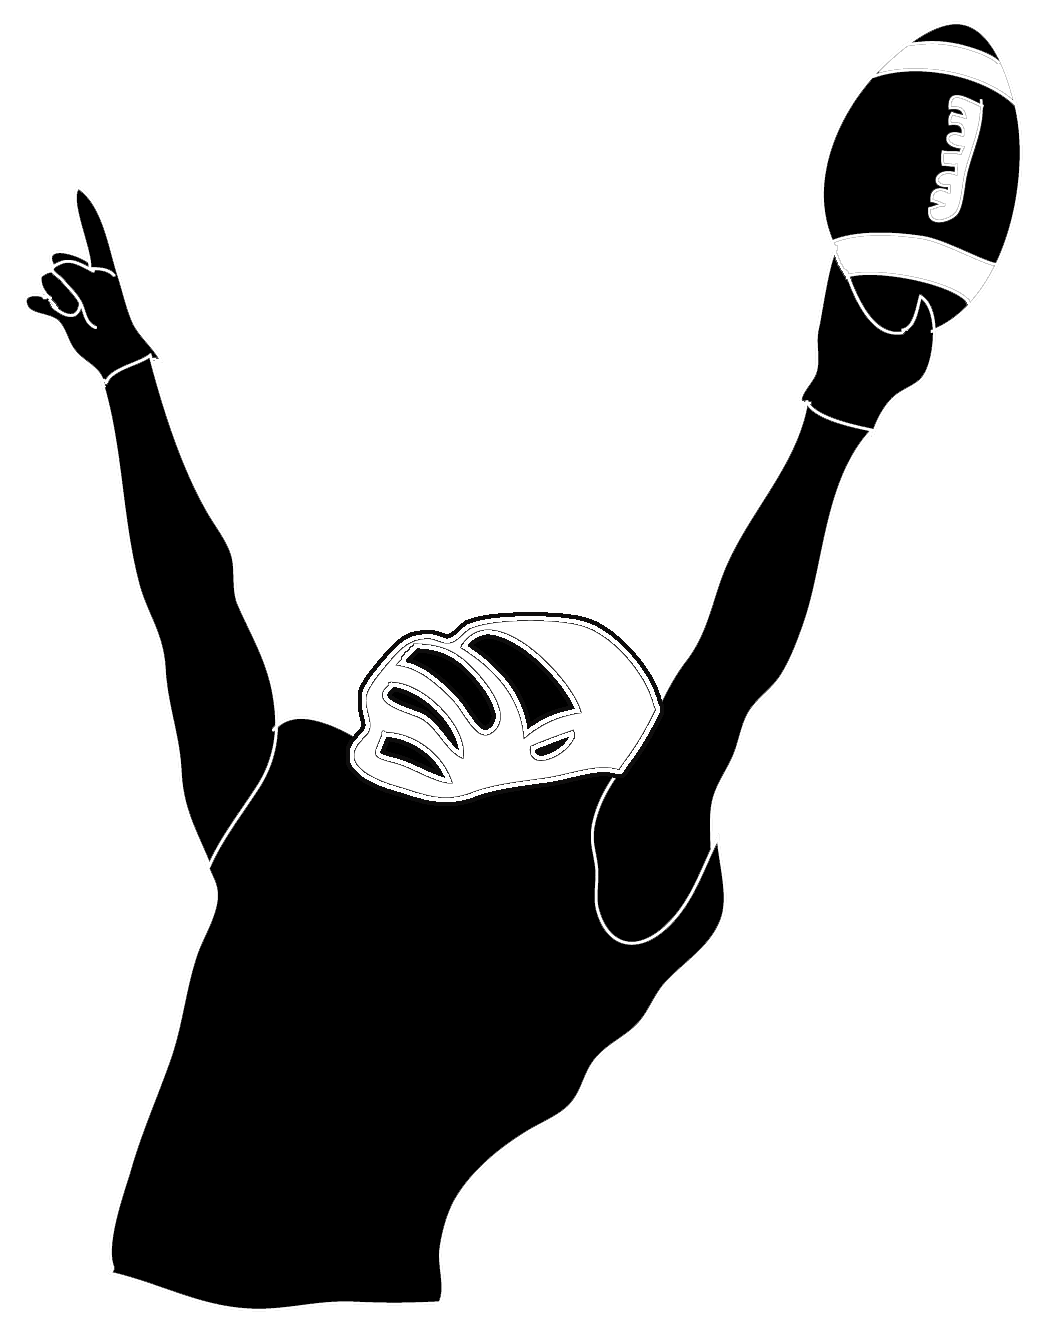 Volleyball clipart block party. Victory football player pinterest